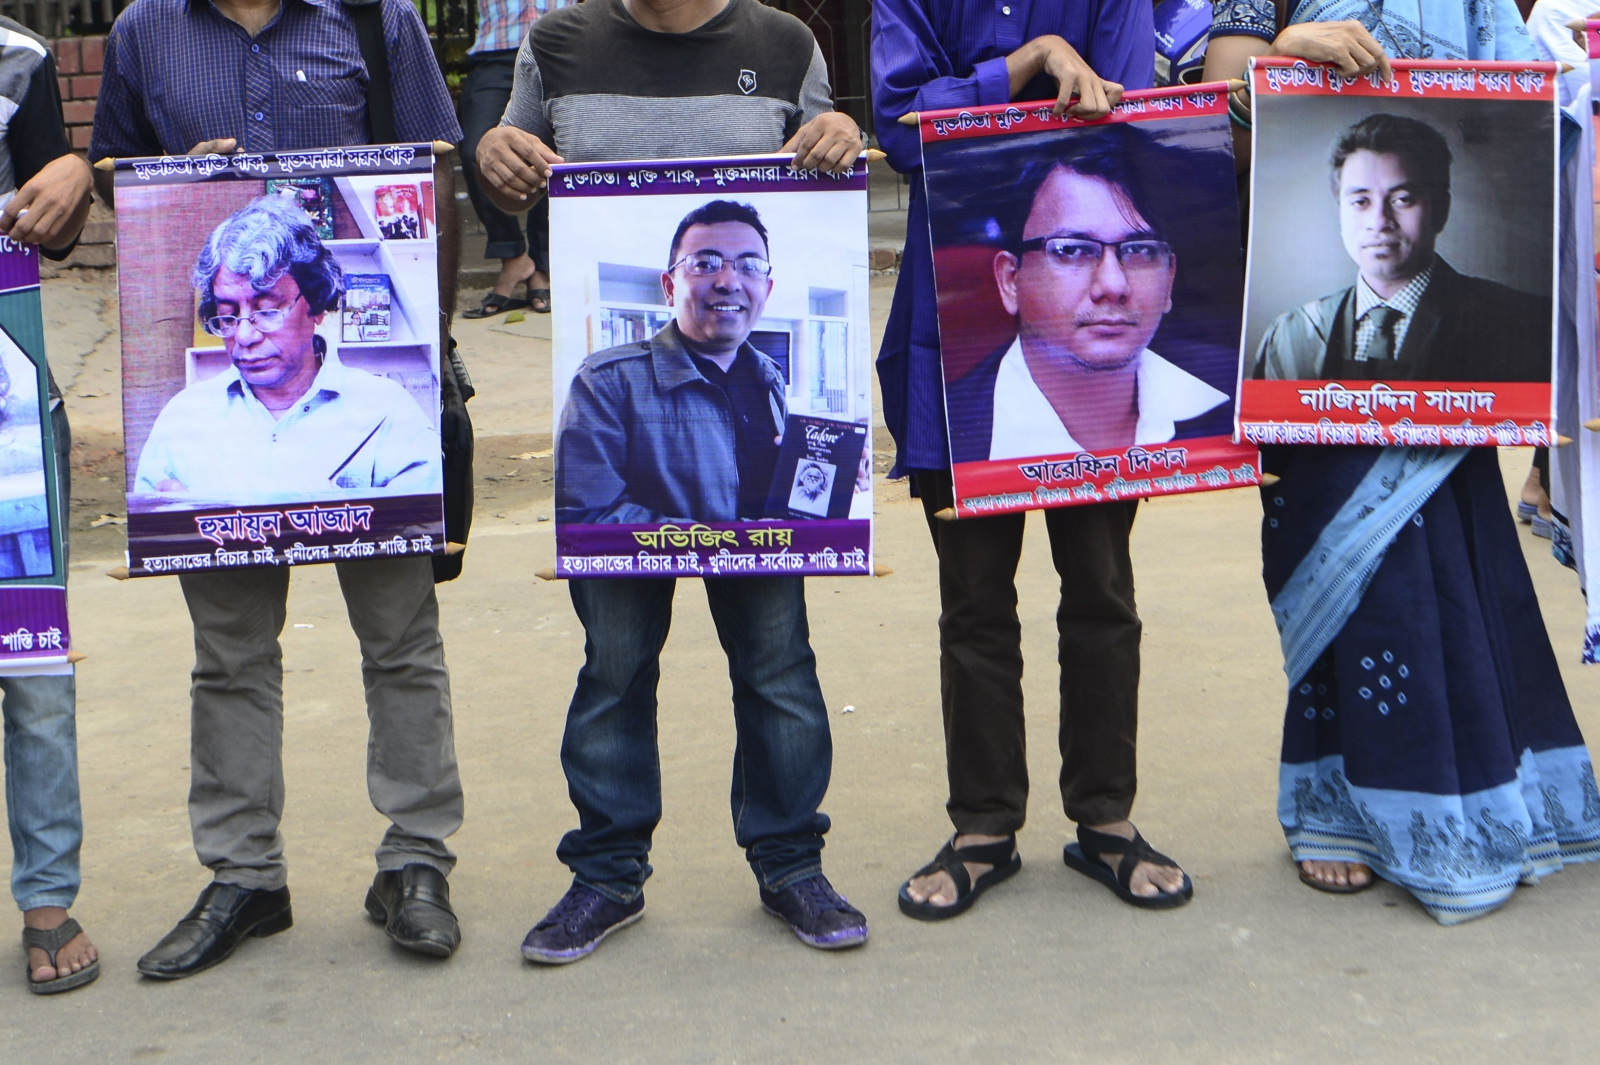 Bangladesh arrests